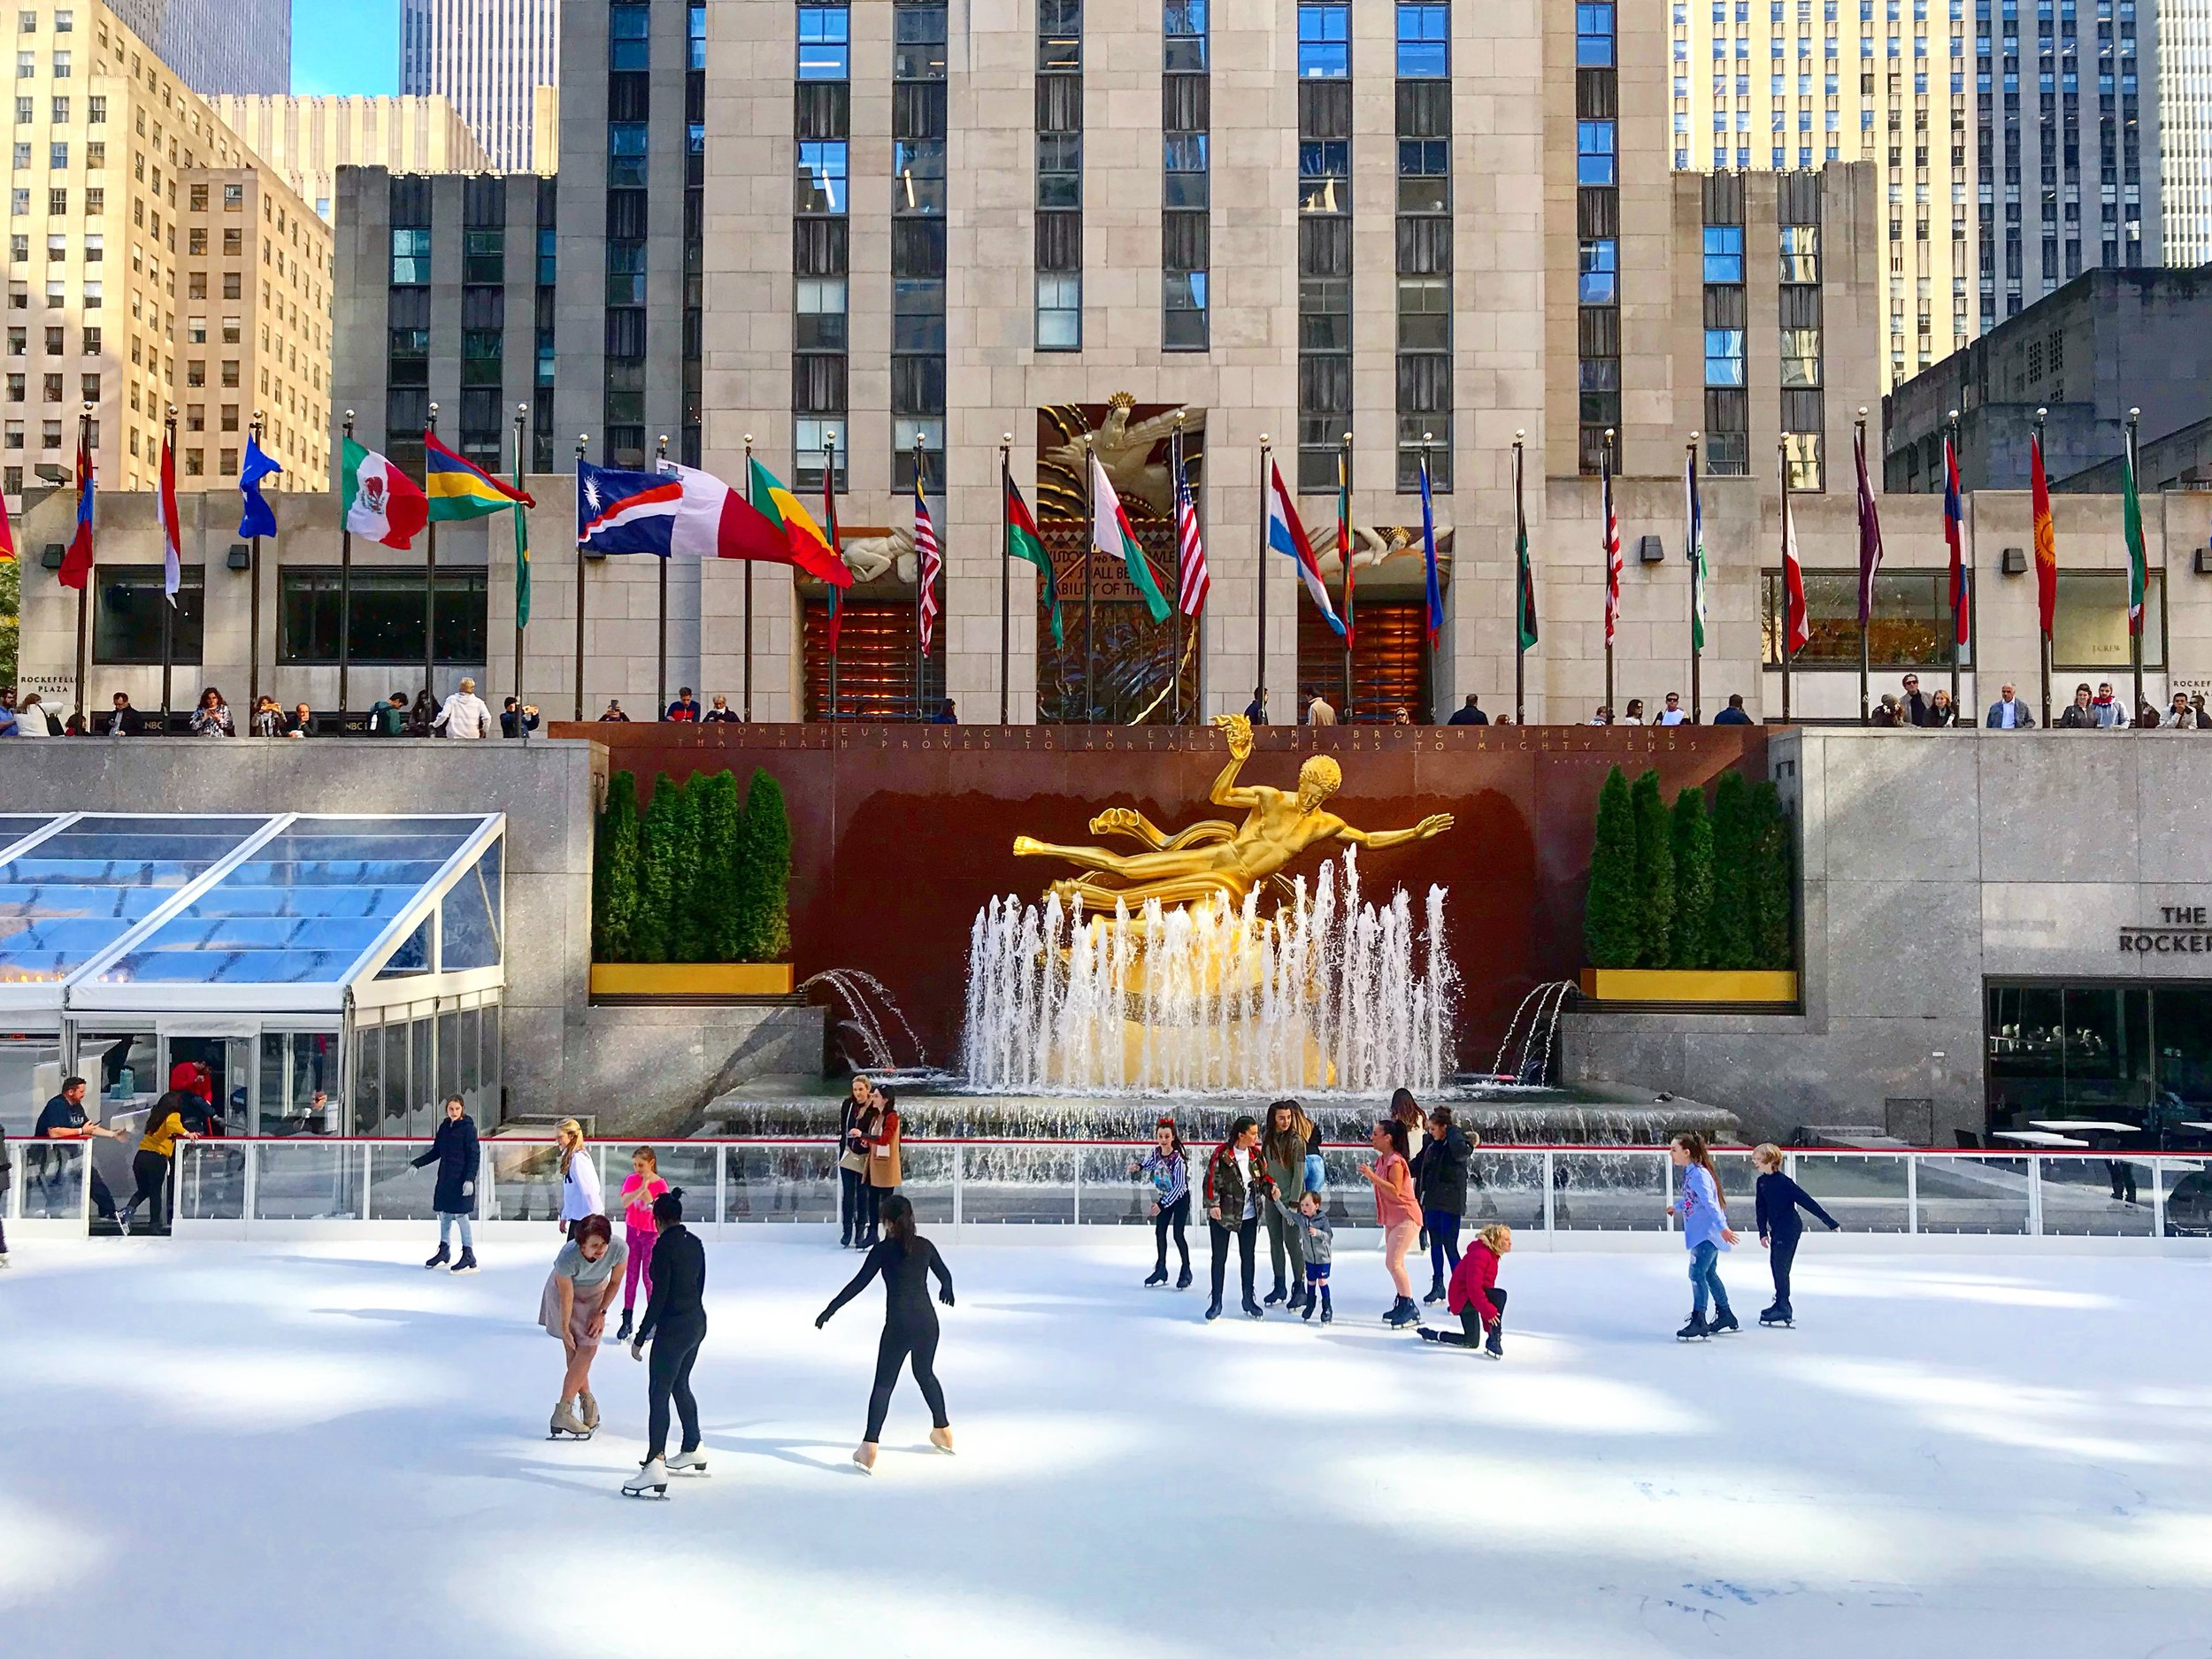 The Rockefeller Ice-Skating Rink